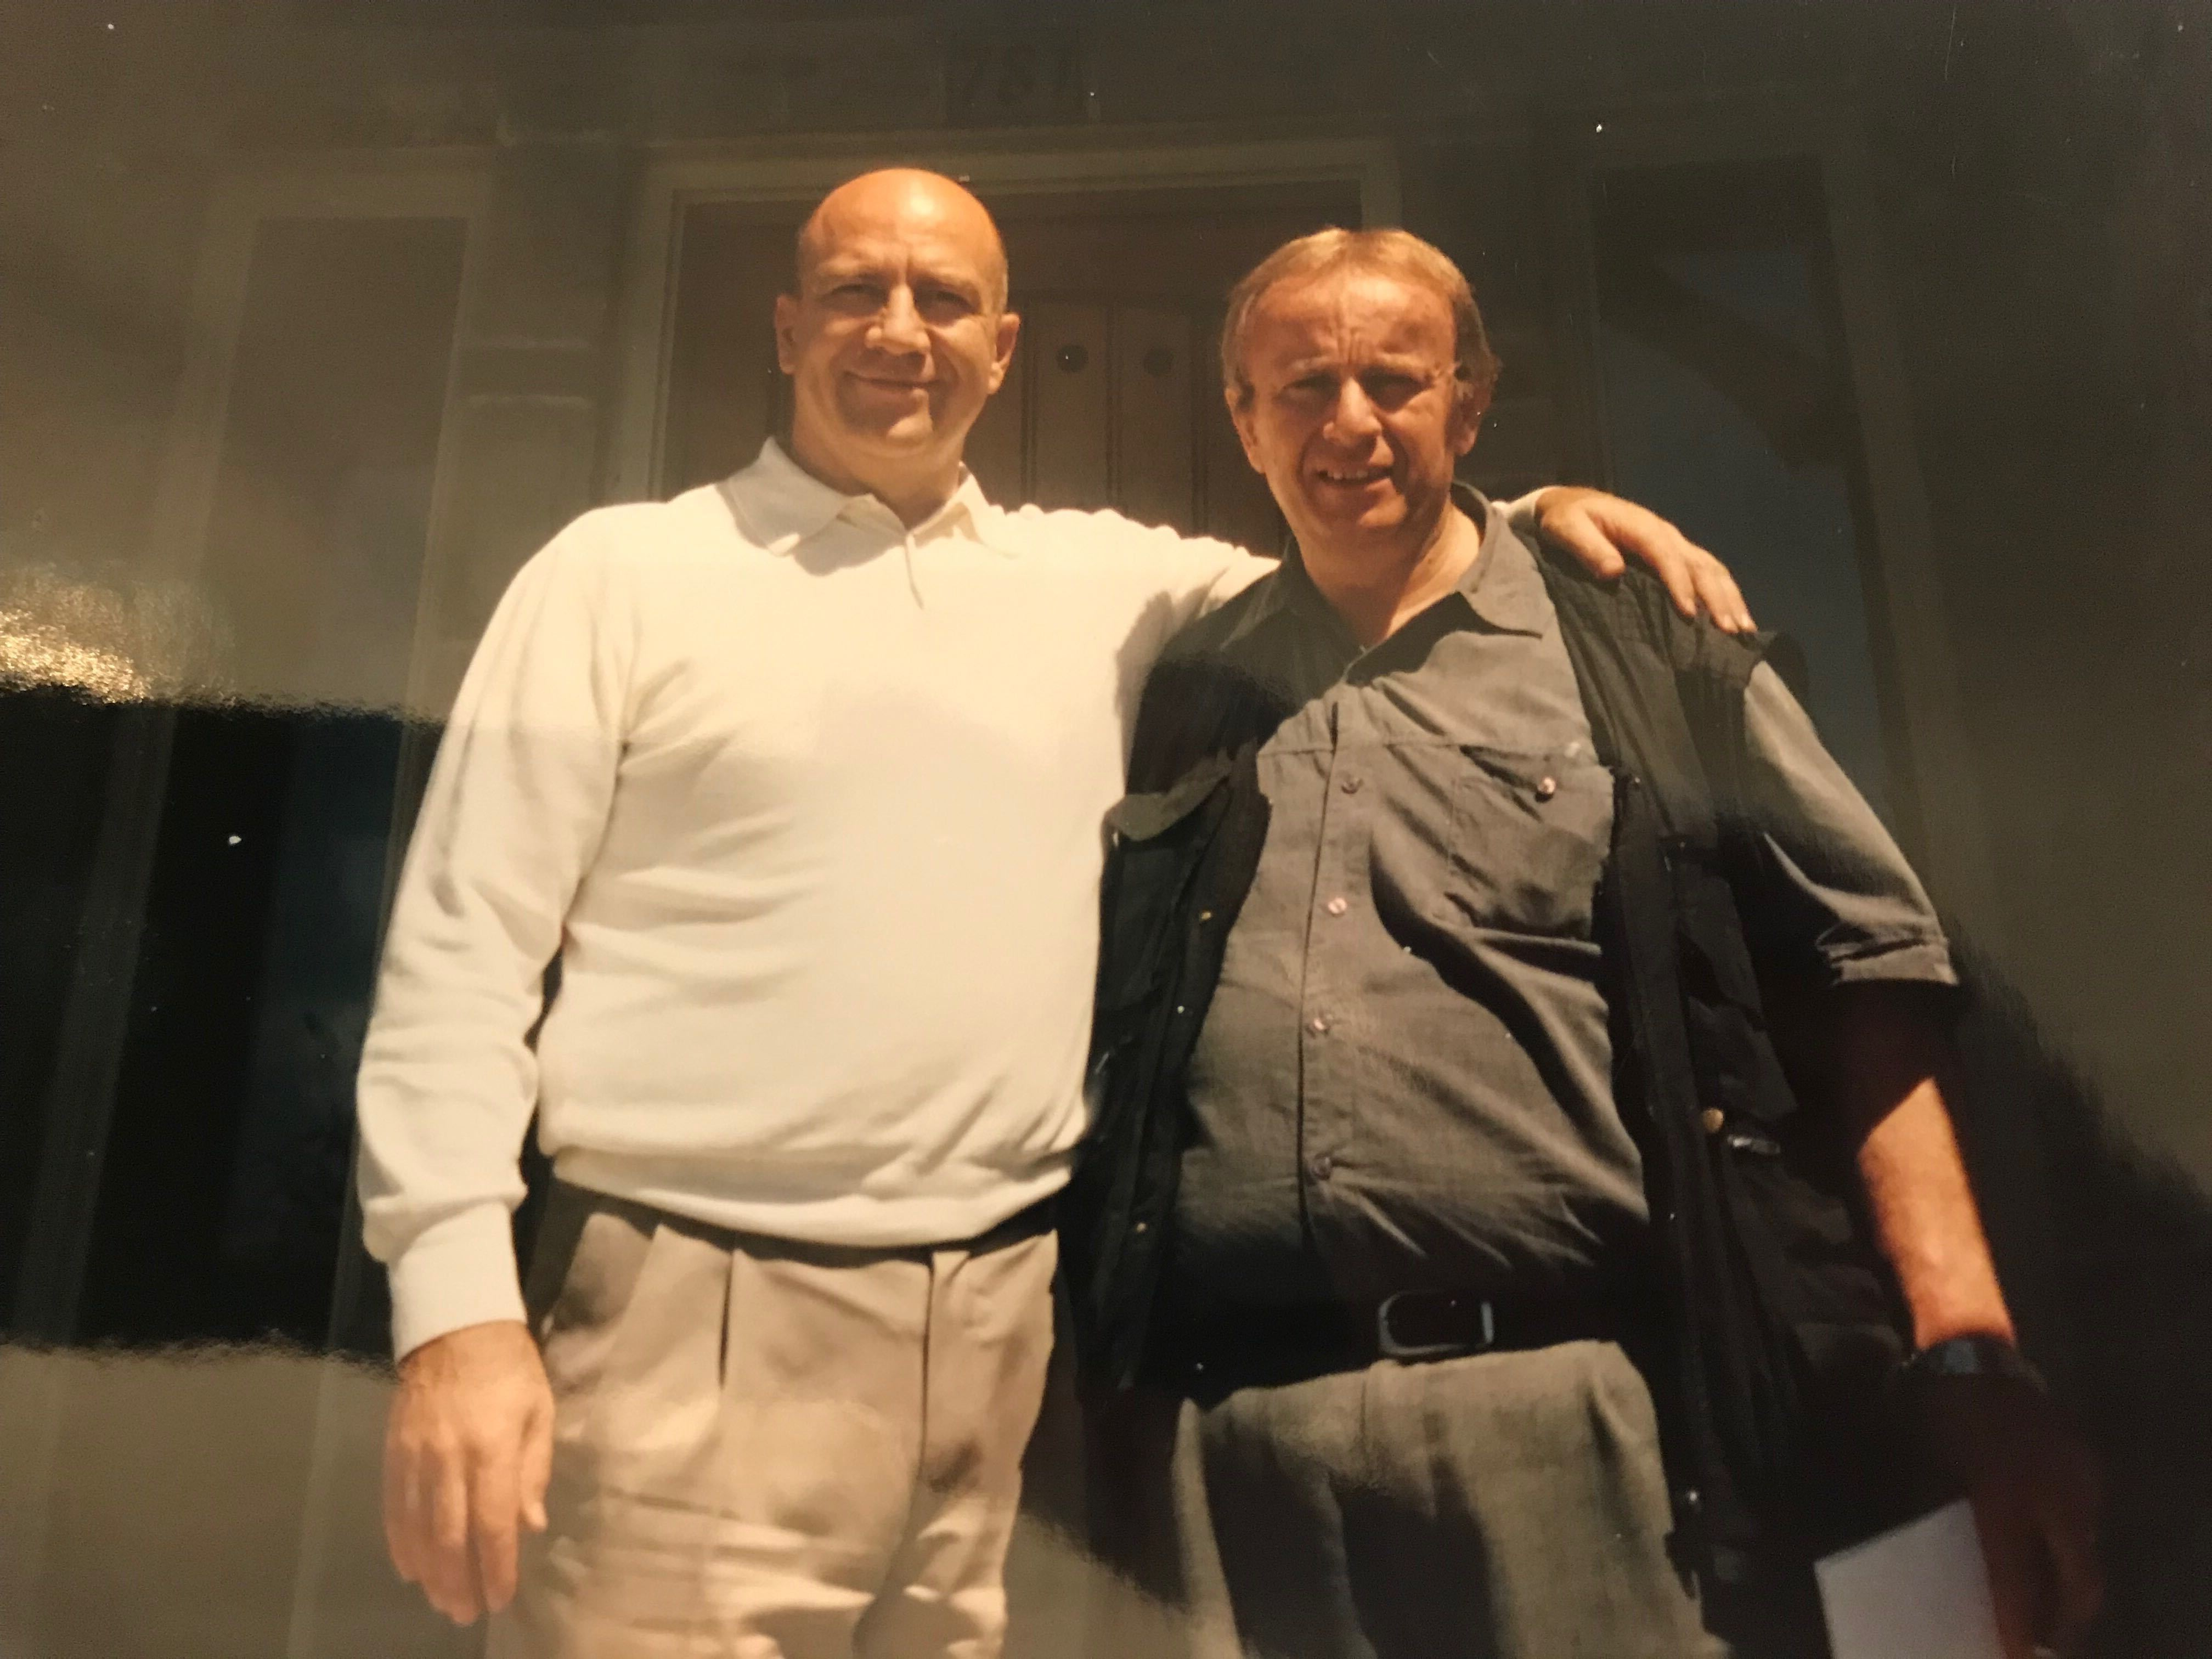 Right, Roberto Deni stands with Sharman Smoot, one of the Latter-day Saint missionaries who taught and baptized Deni in Italy in the 1970s.